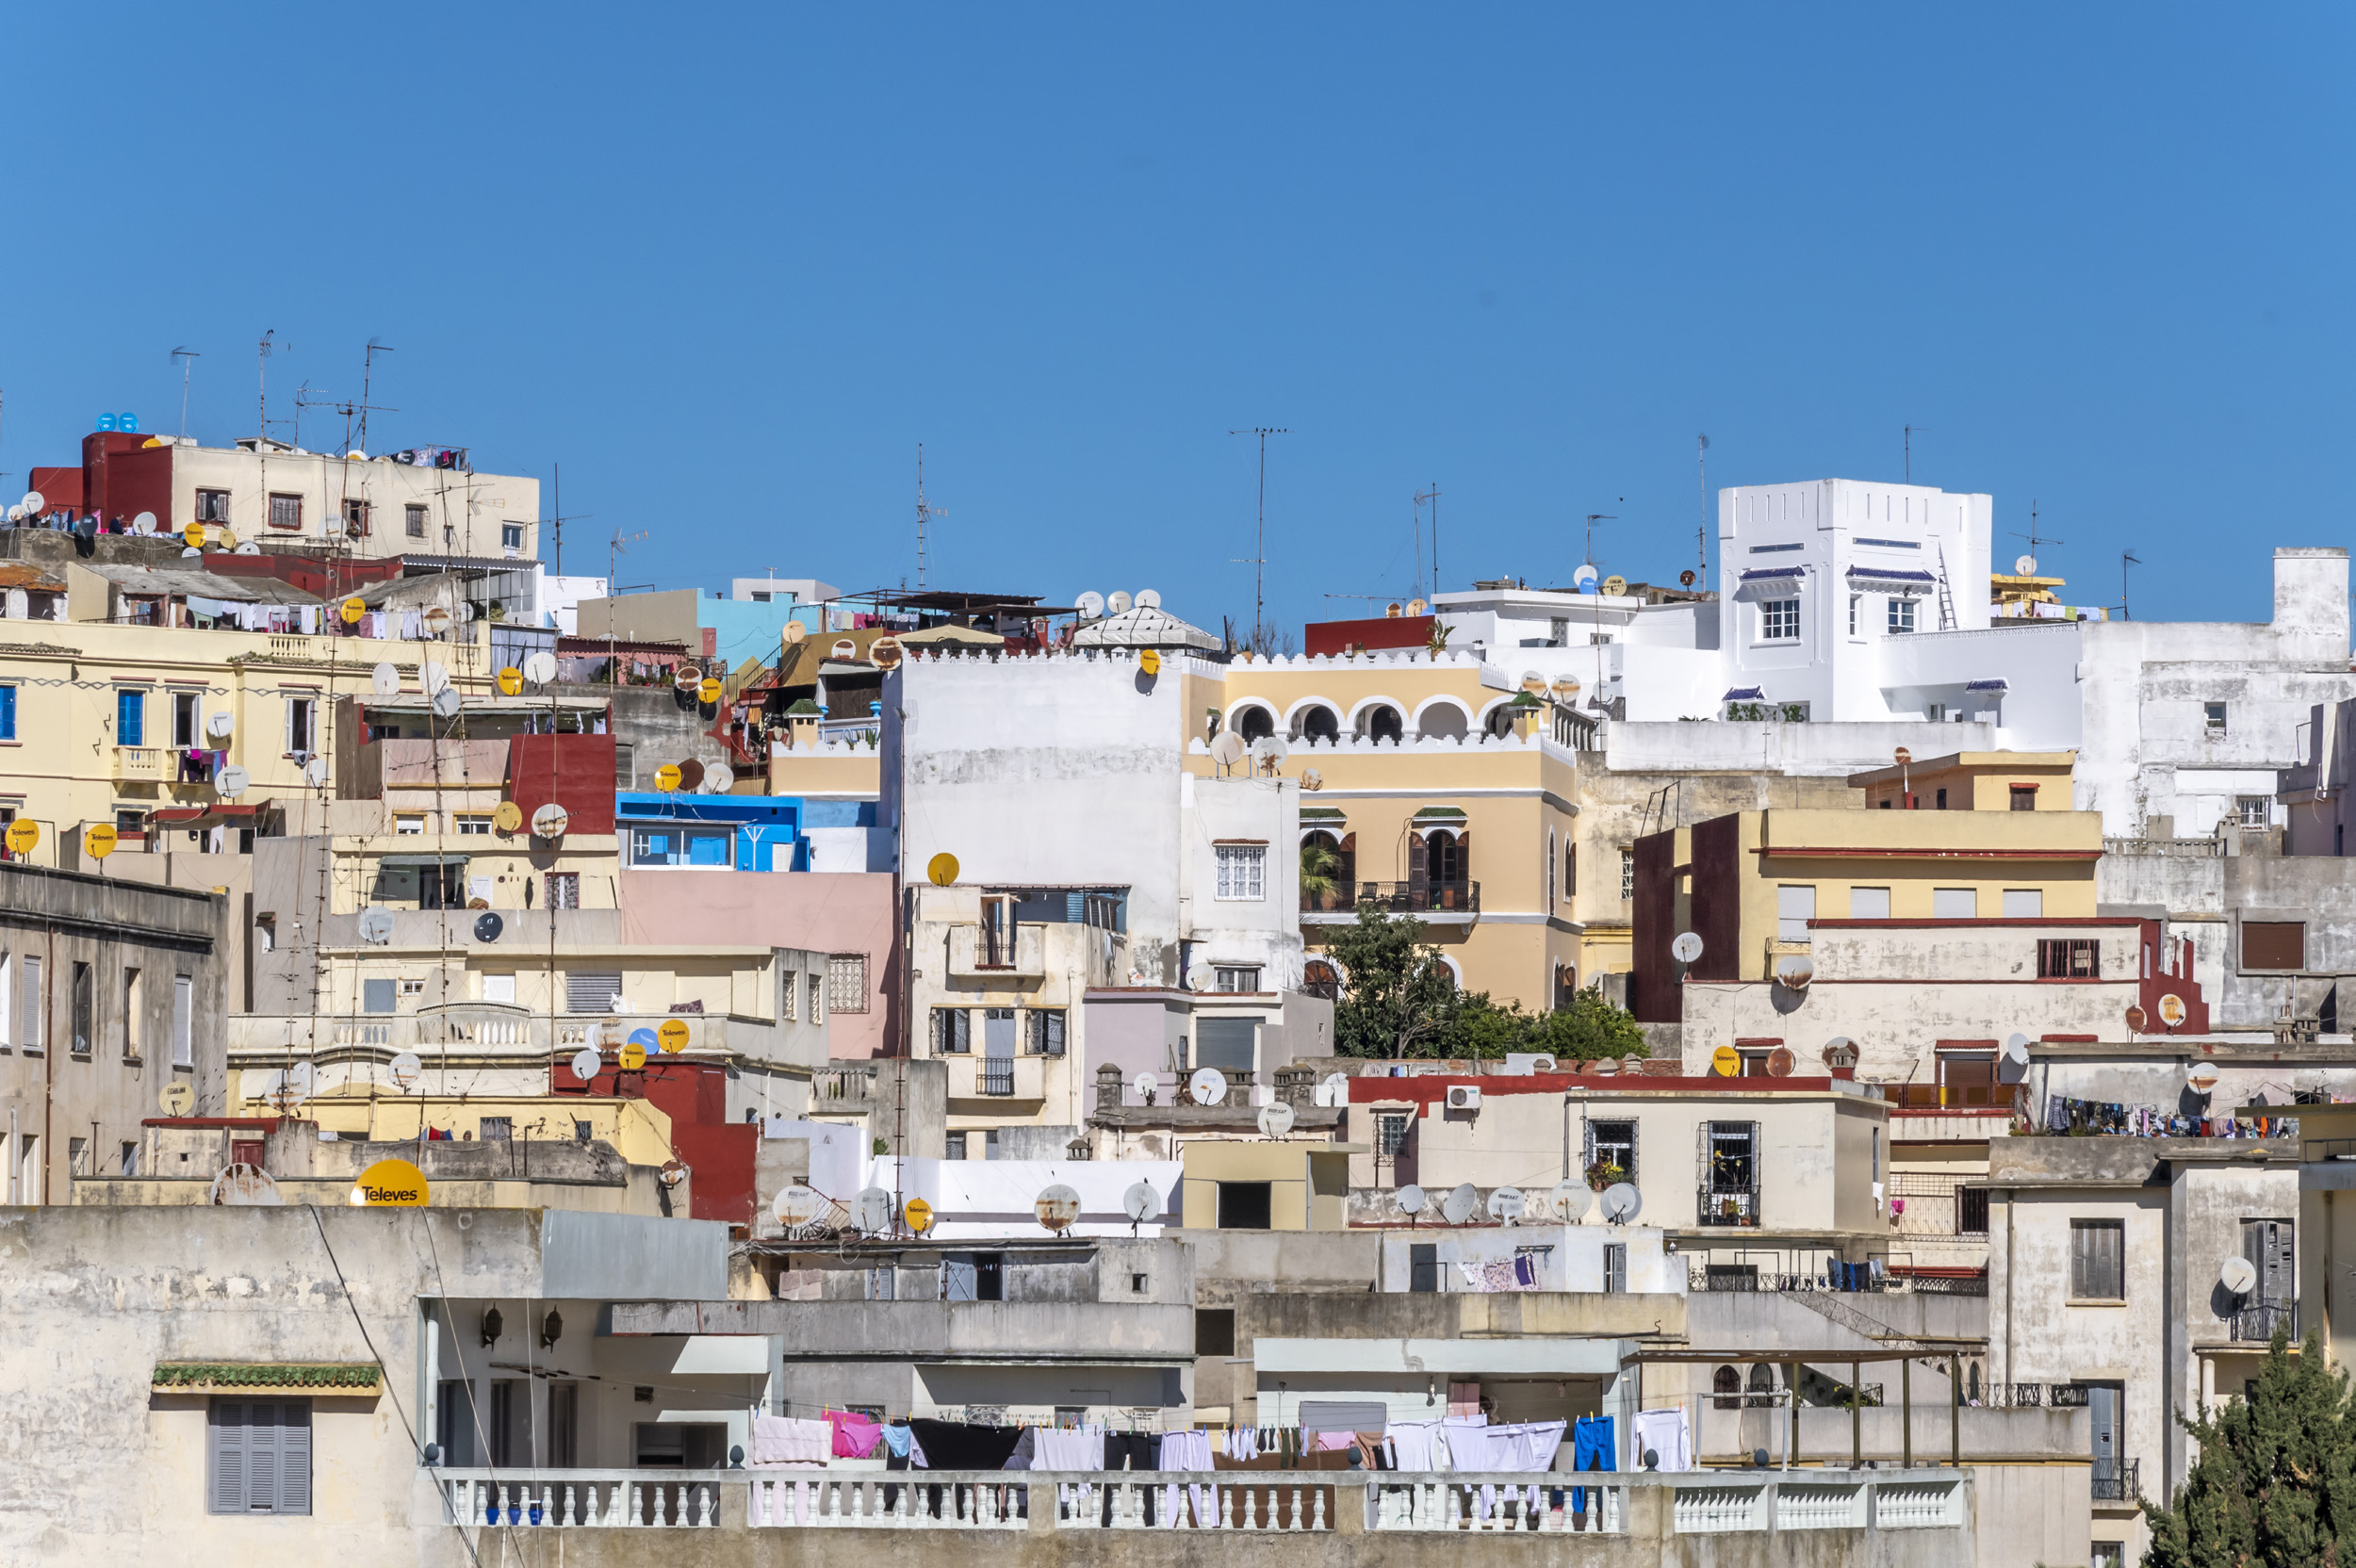 Skyline of Tangier